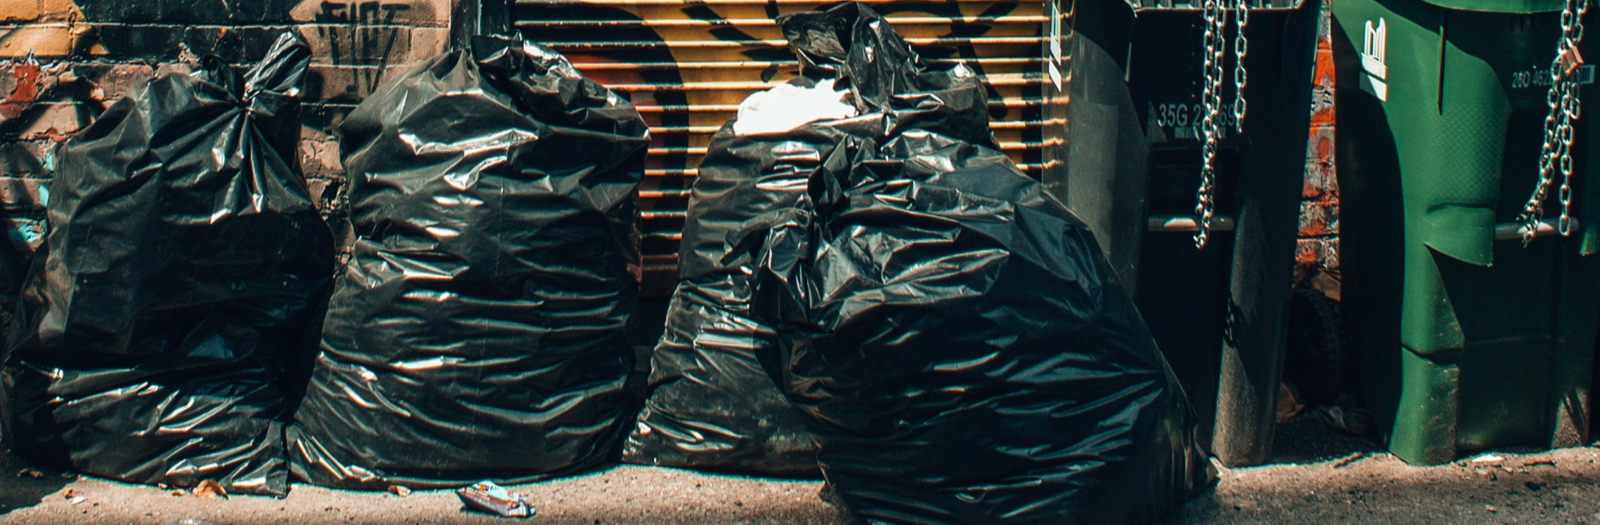 Full garbage bags